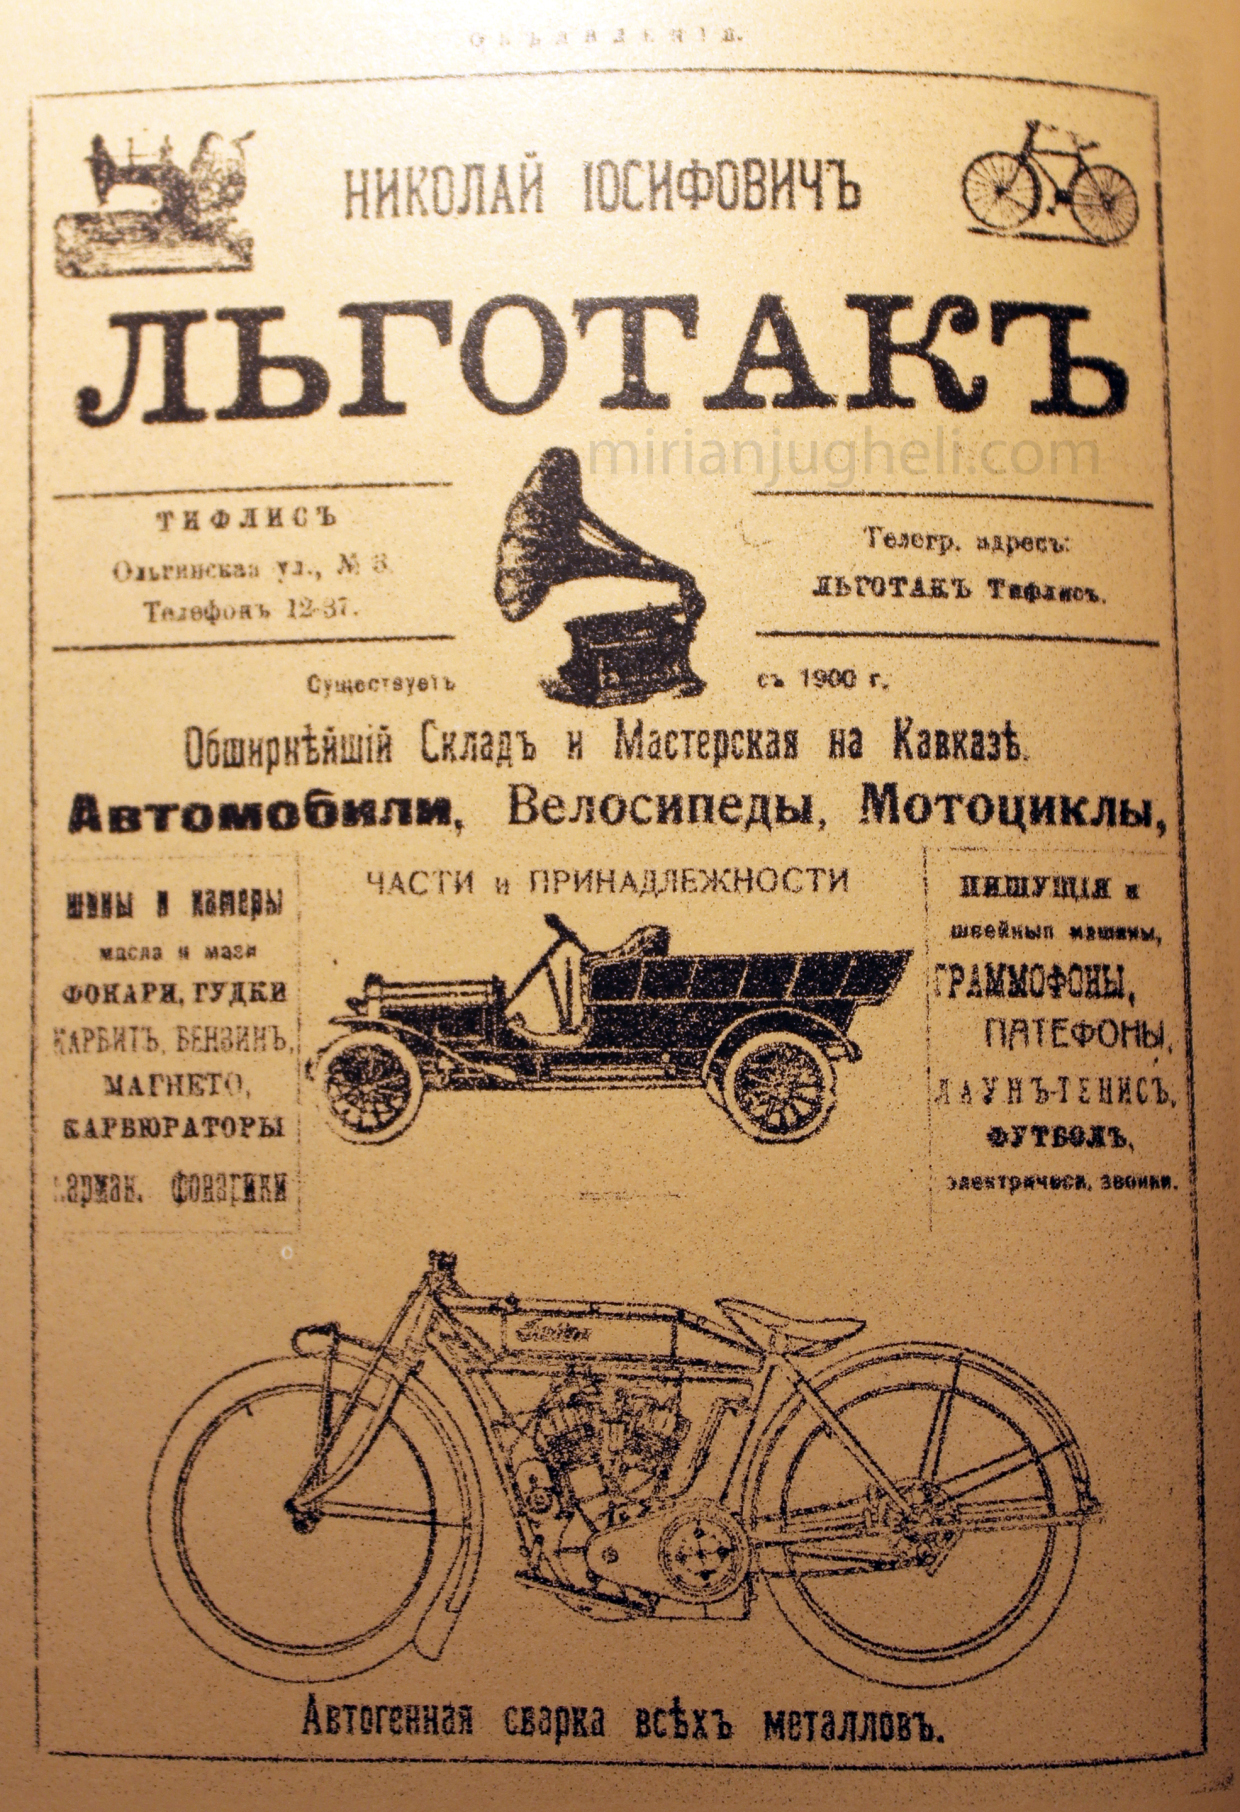 20th_century_georgian_advertising-21.jpg